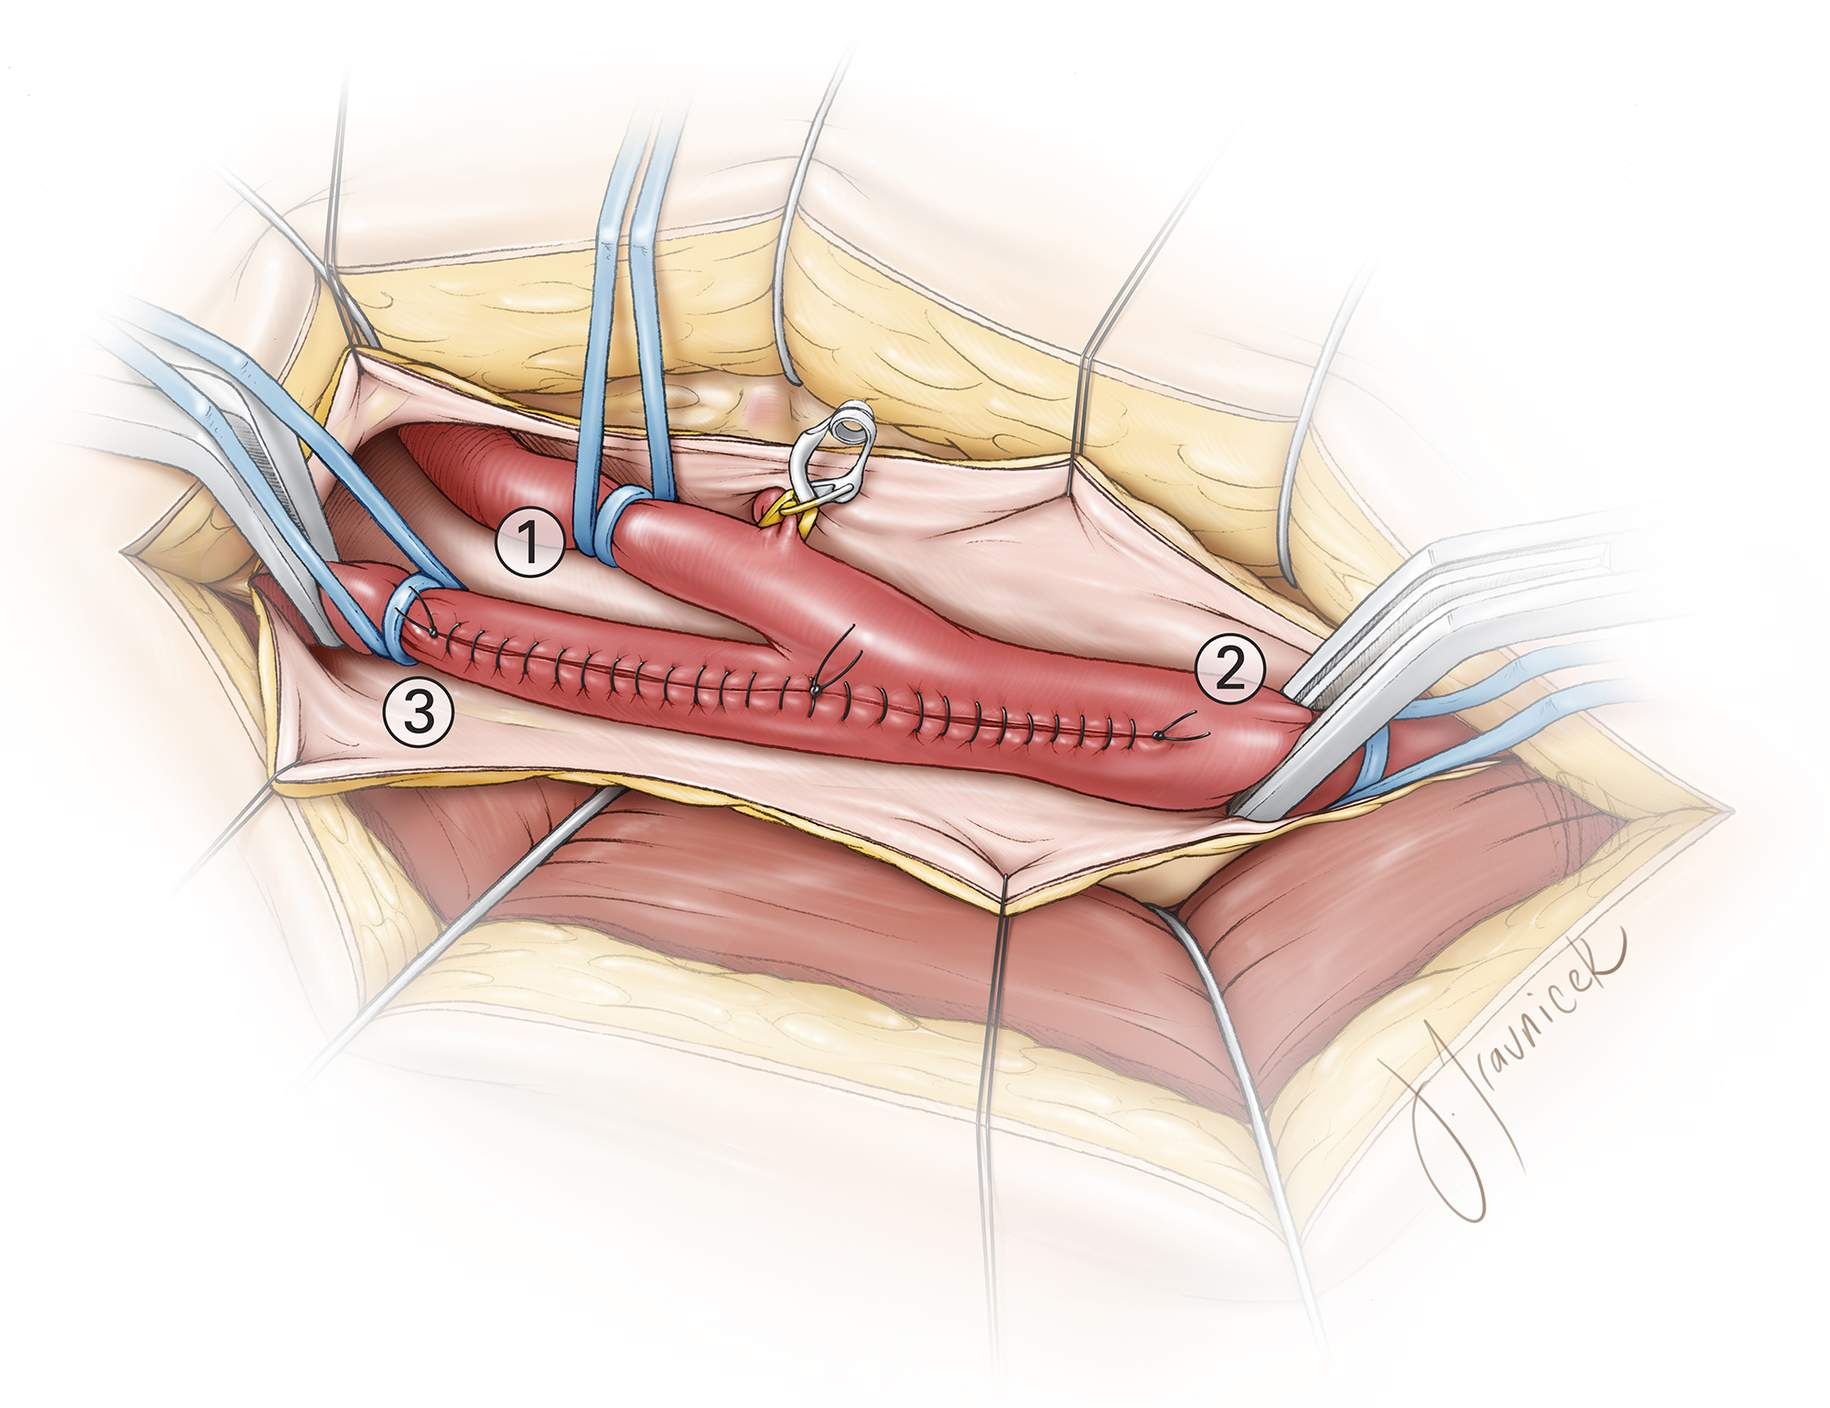 Figure 20: The order of clamp removal and flow restoration is illustrated. This order of flow restoration is imperative to avoidance of distal embolization.